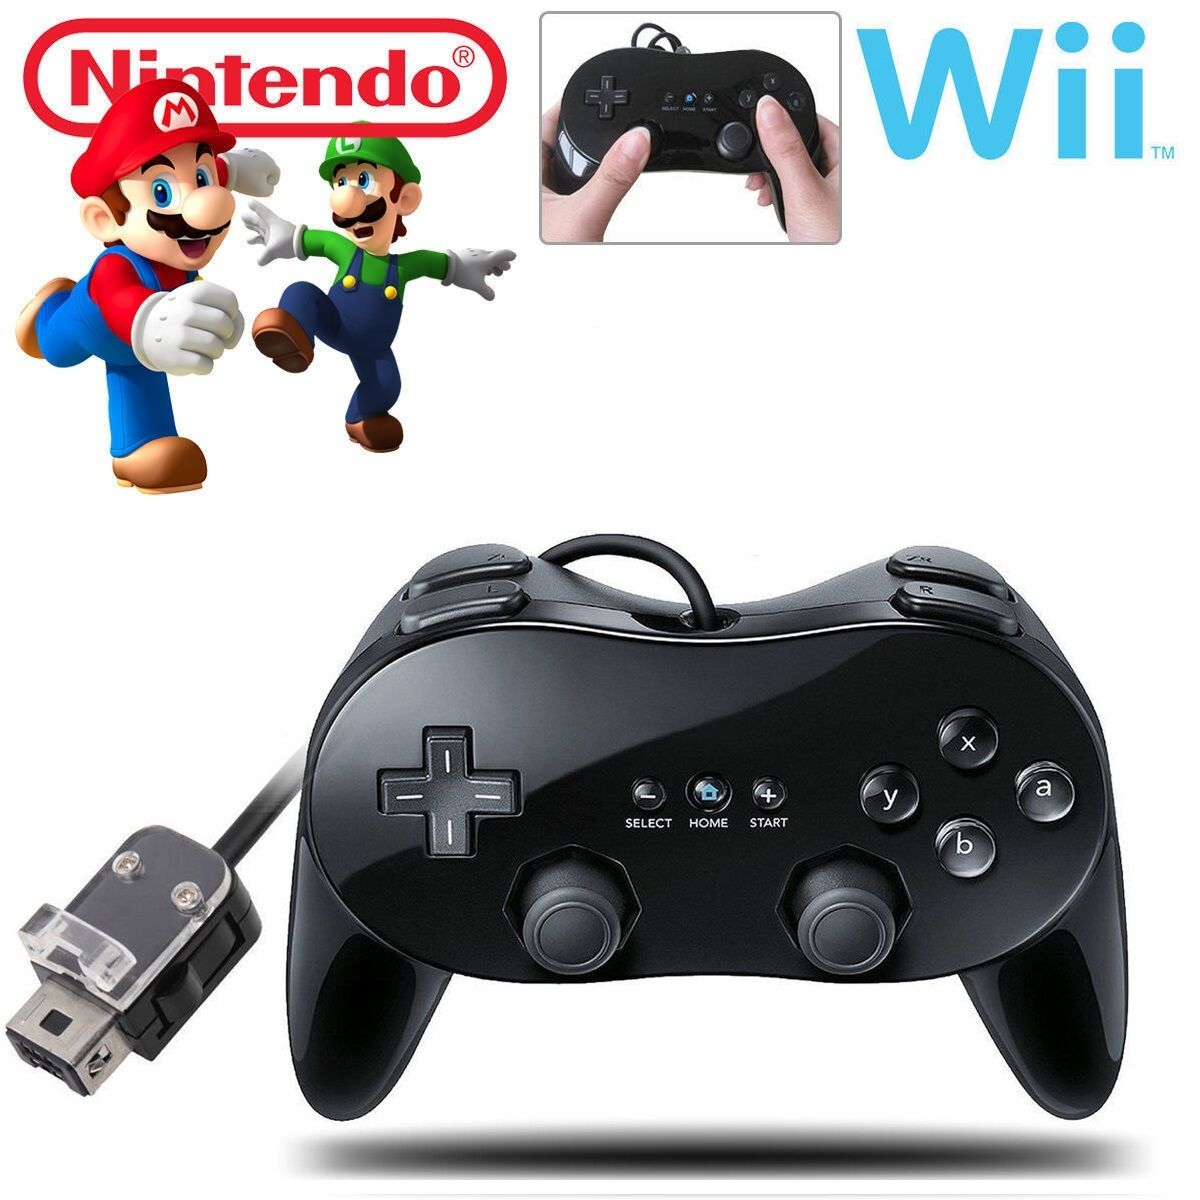 New Pro Classic Game Controller Pad Console Joypad For Nintendo Wii Remote Black Controllers & Attachments